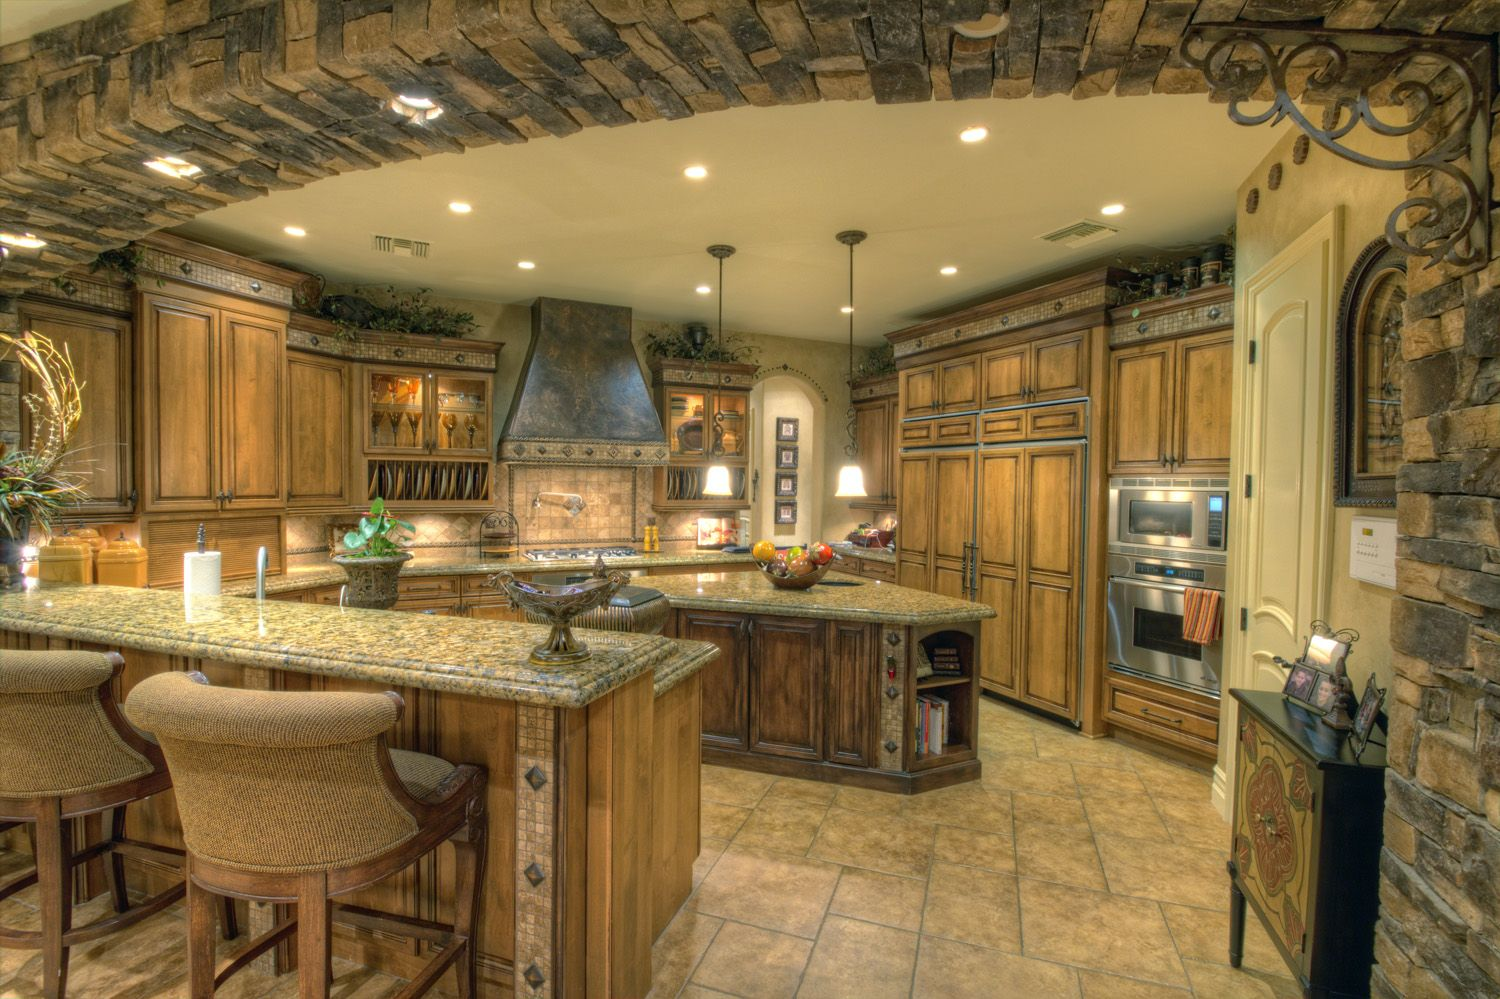 Luxury kitchens luxury estate designer for House kitchen cabinets